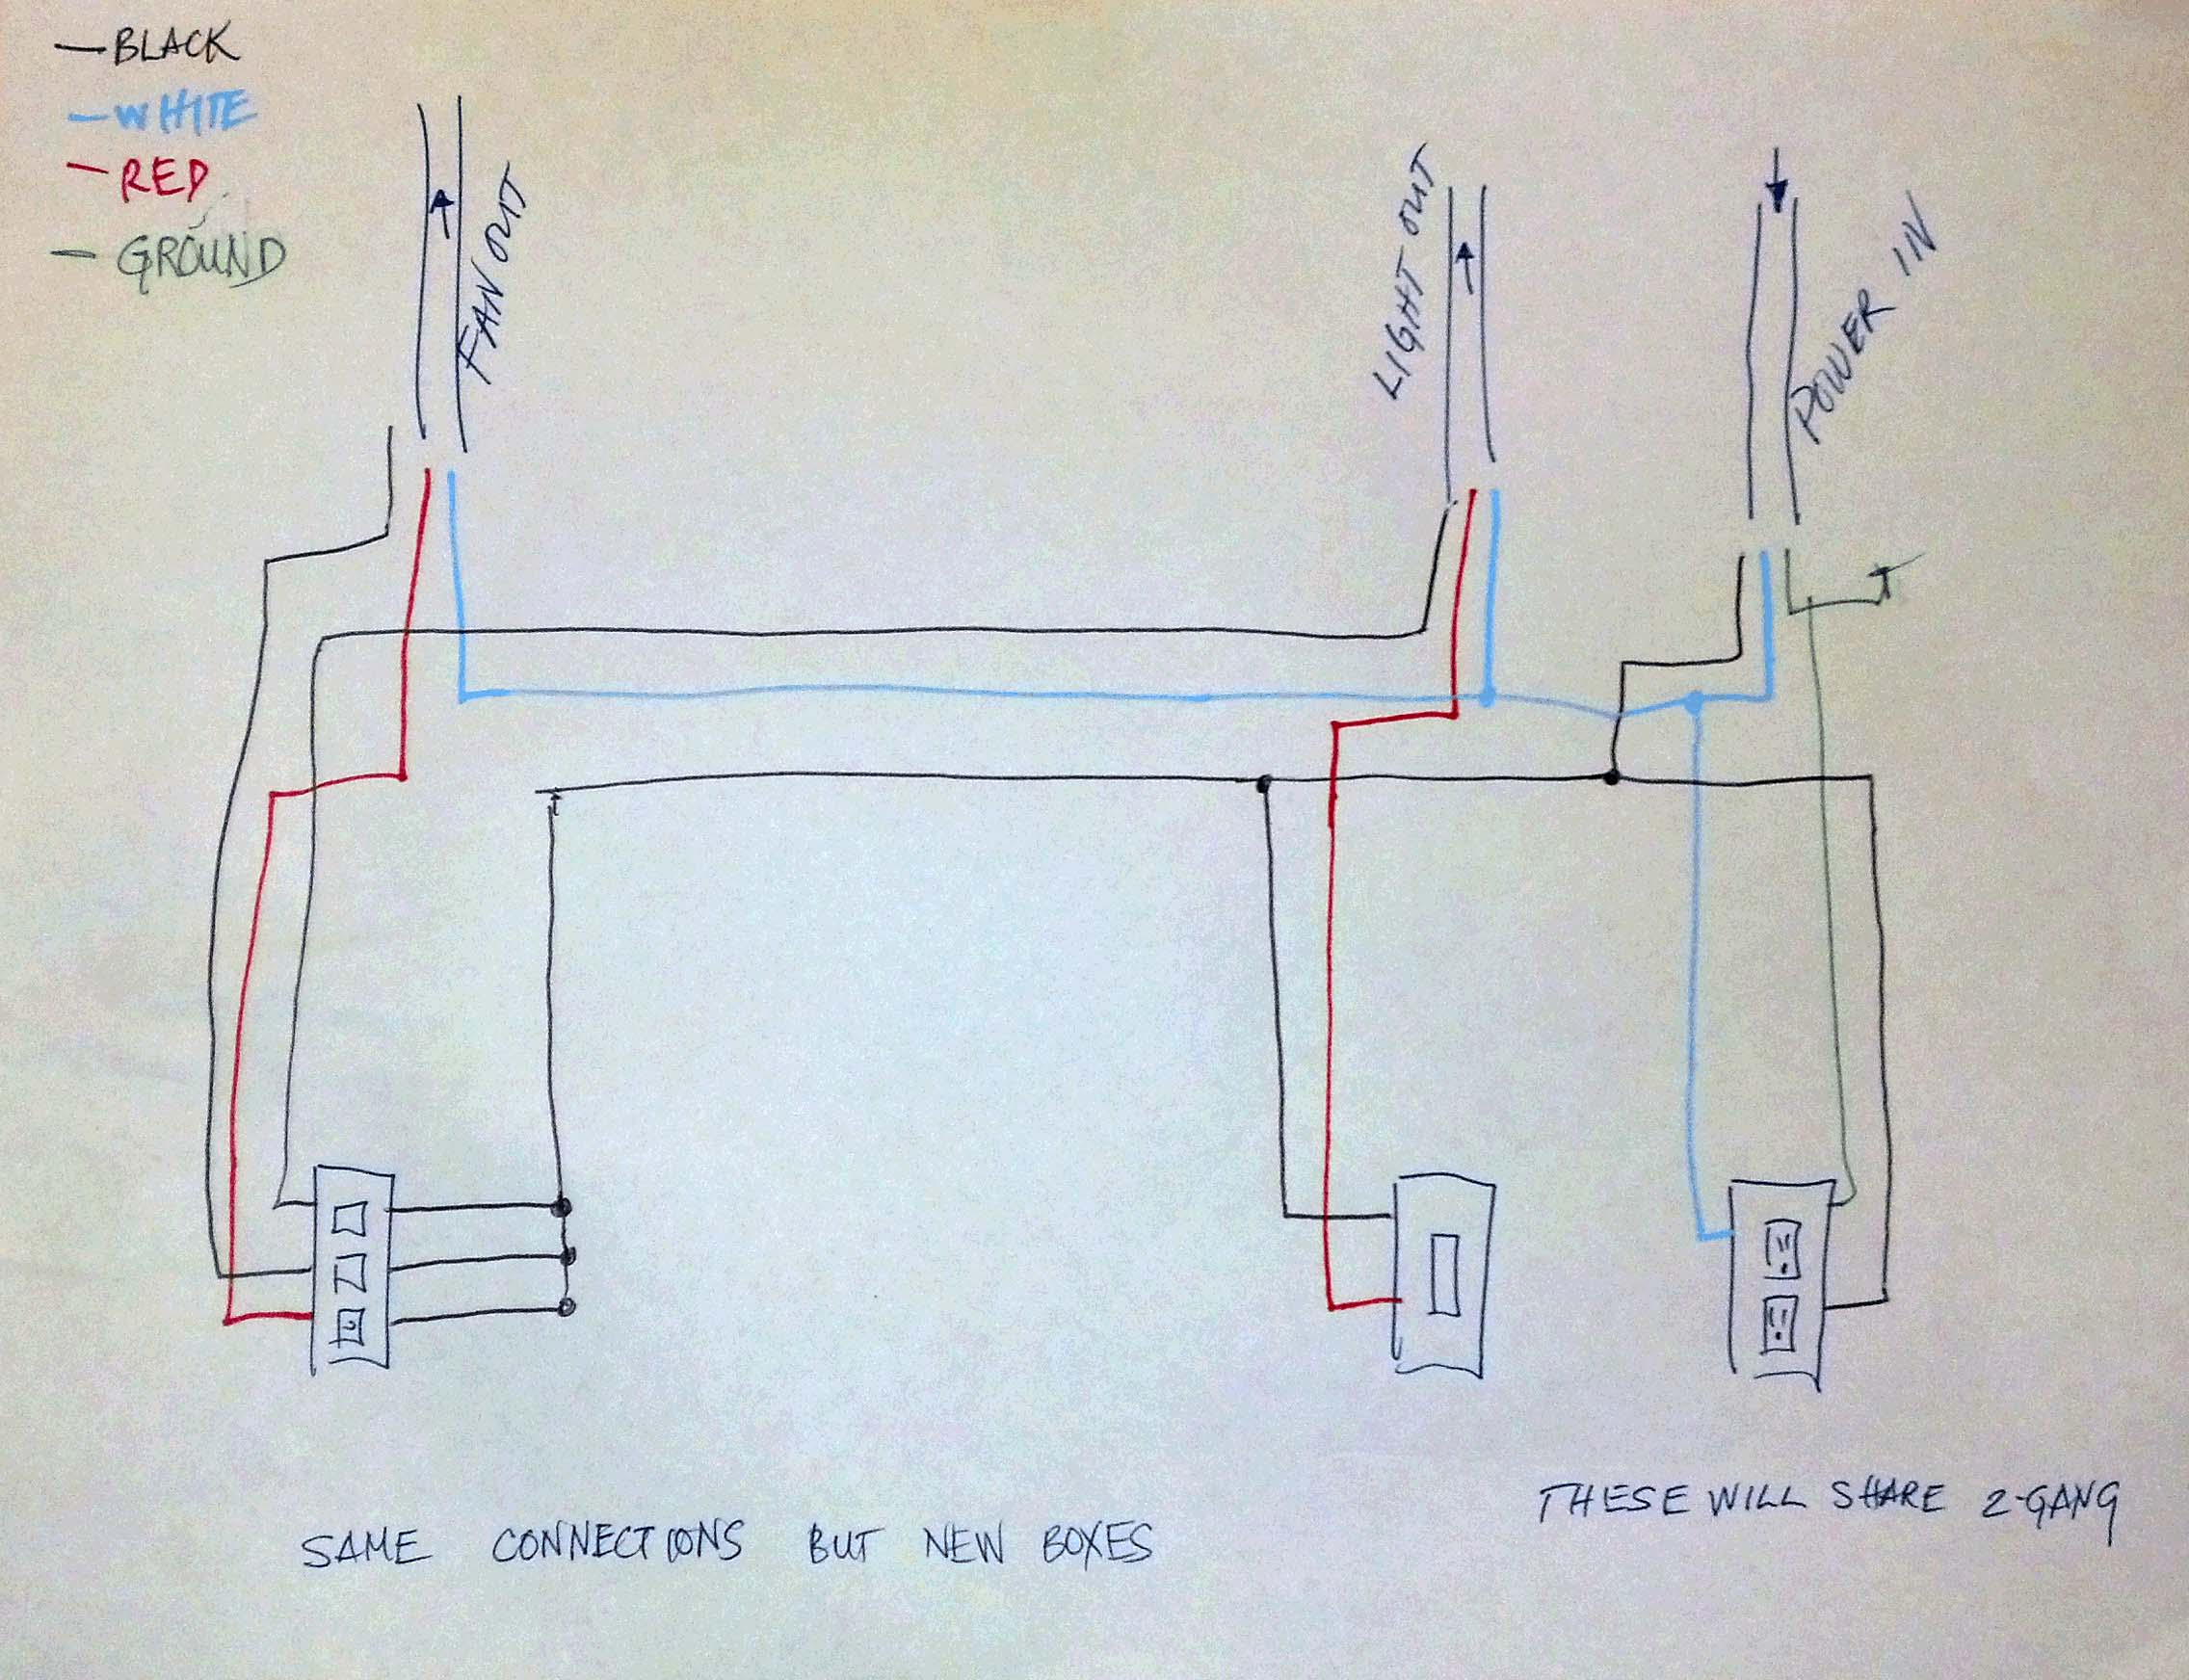 MS_8528] Fan Light Switch Wiring Diagram On Wiring Diagram For A Bathroom  FanEpete Gue45 Mohammedshrine Librar Wiring 101